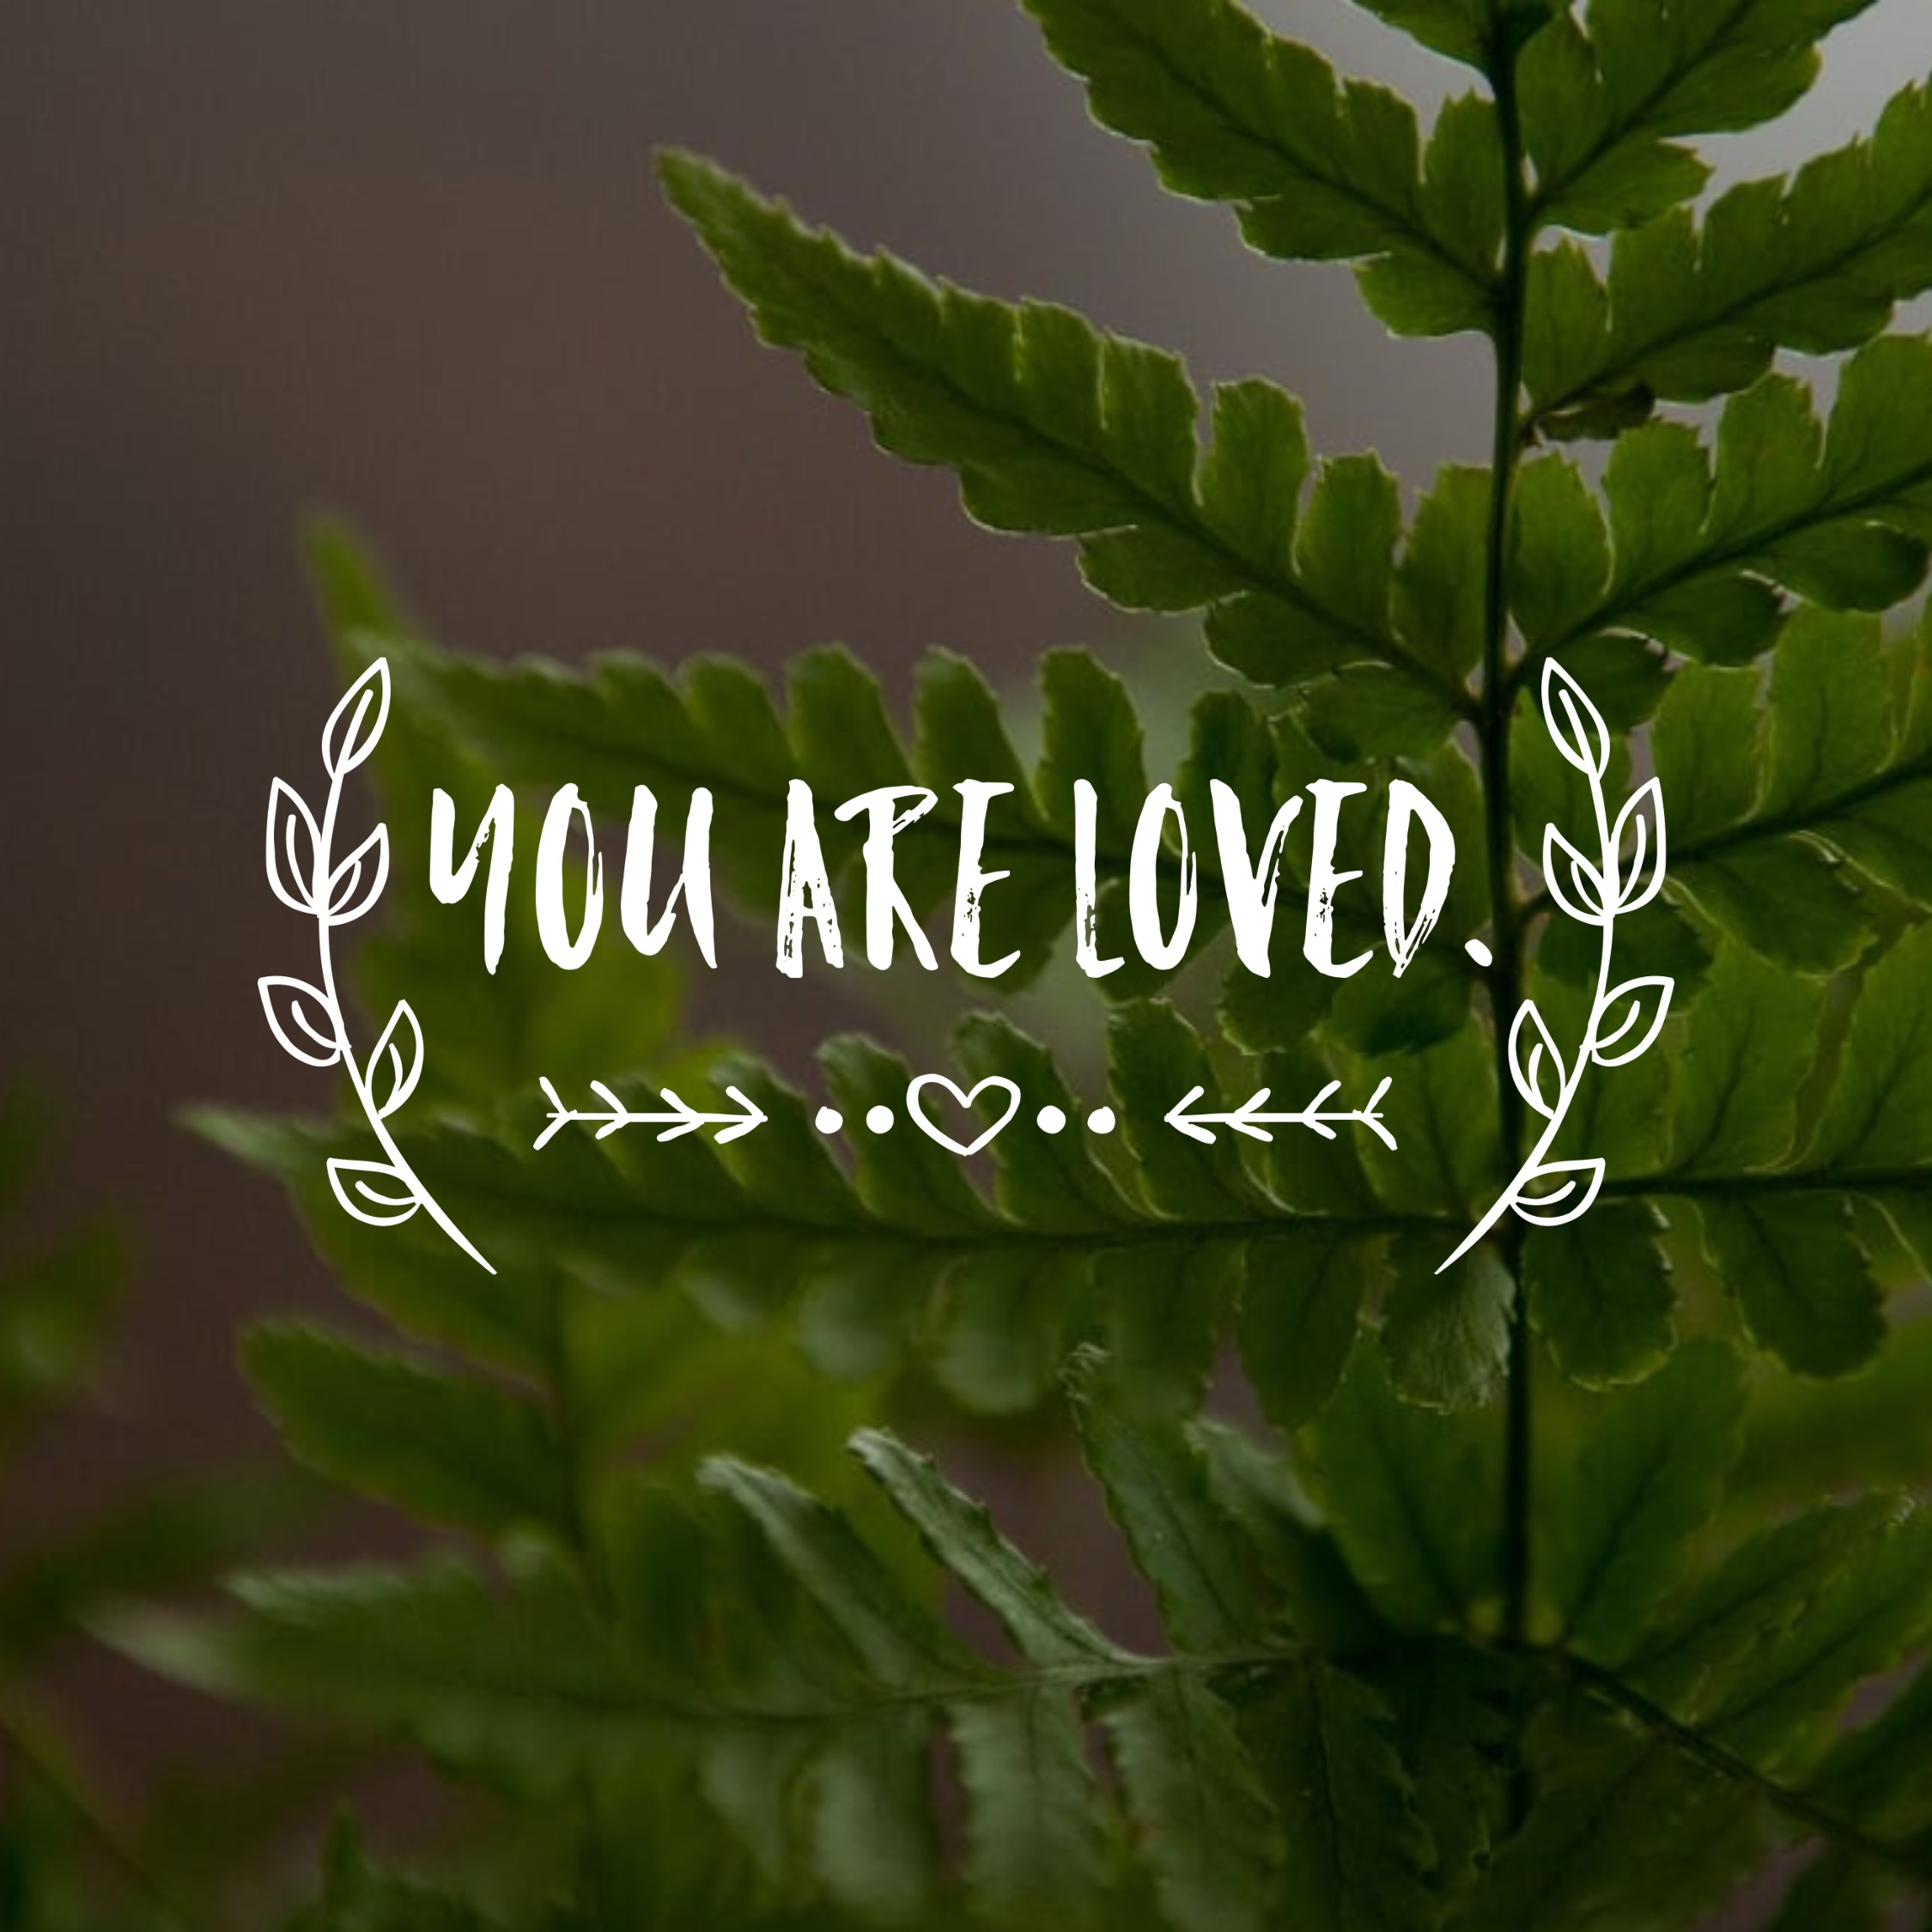 You Are Loved - Inspirational quotes for women | Winston Salem family activities | Jasper & Fern | Winston Salem Photographer | Experience Life | Self Care | Self Value | Self Confidence | Self Love | Mother Daughter Relationship